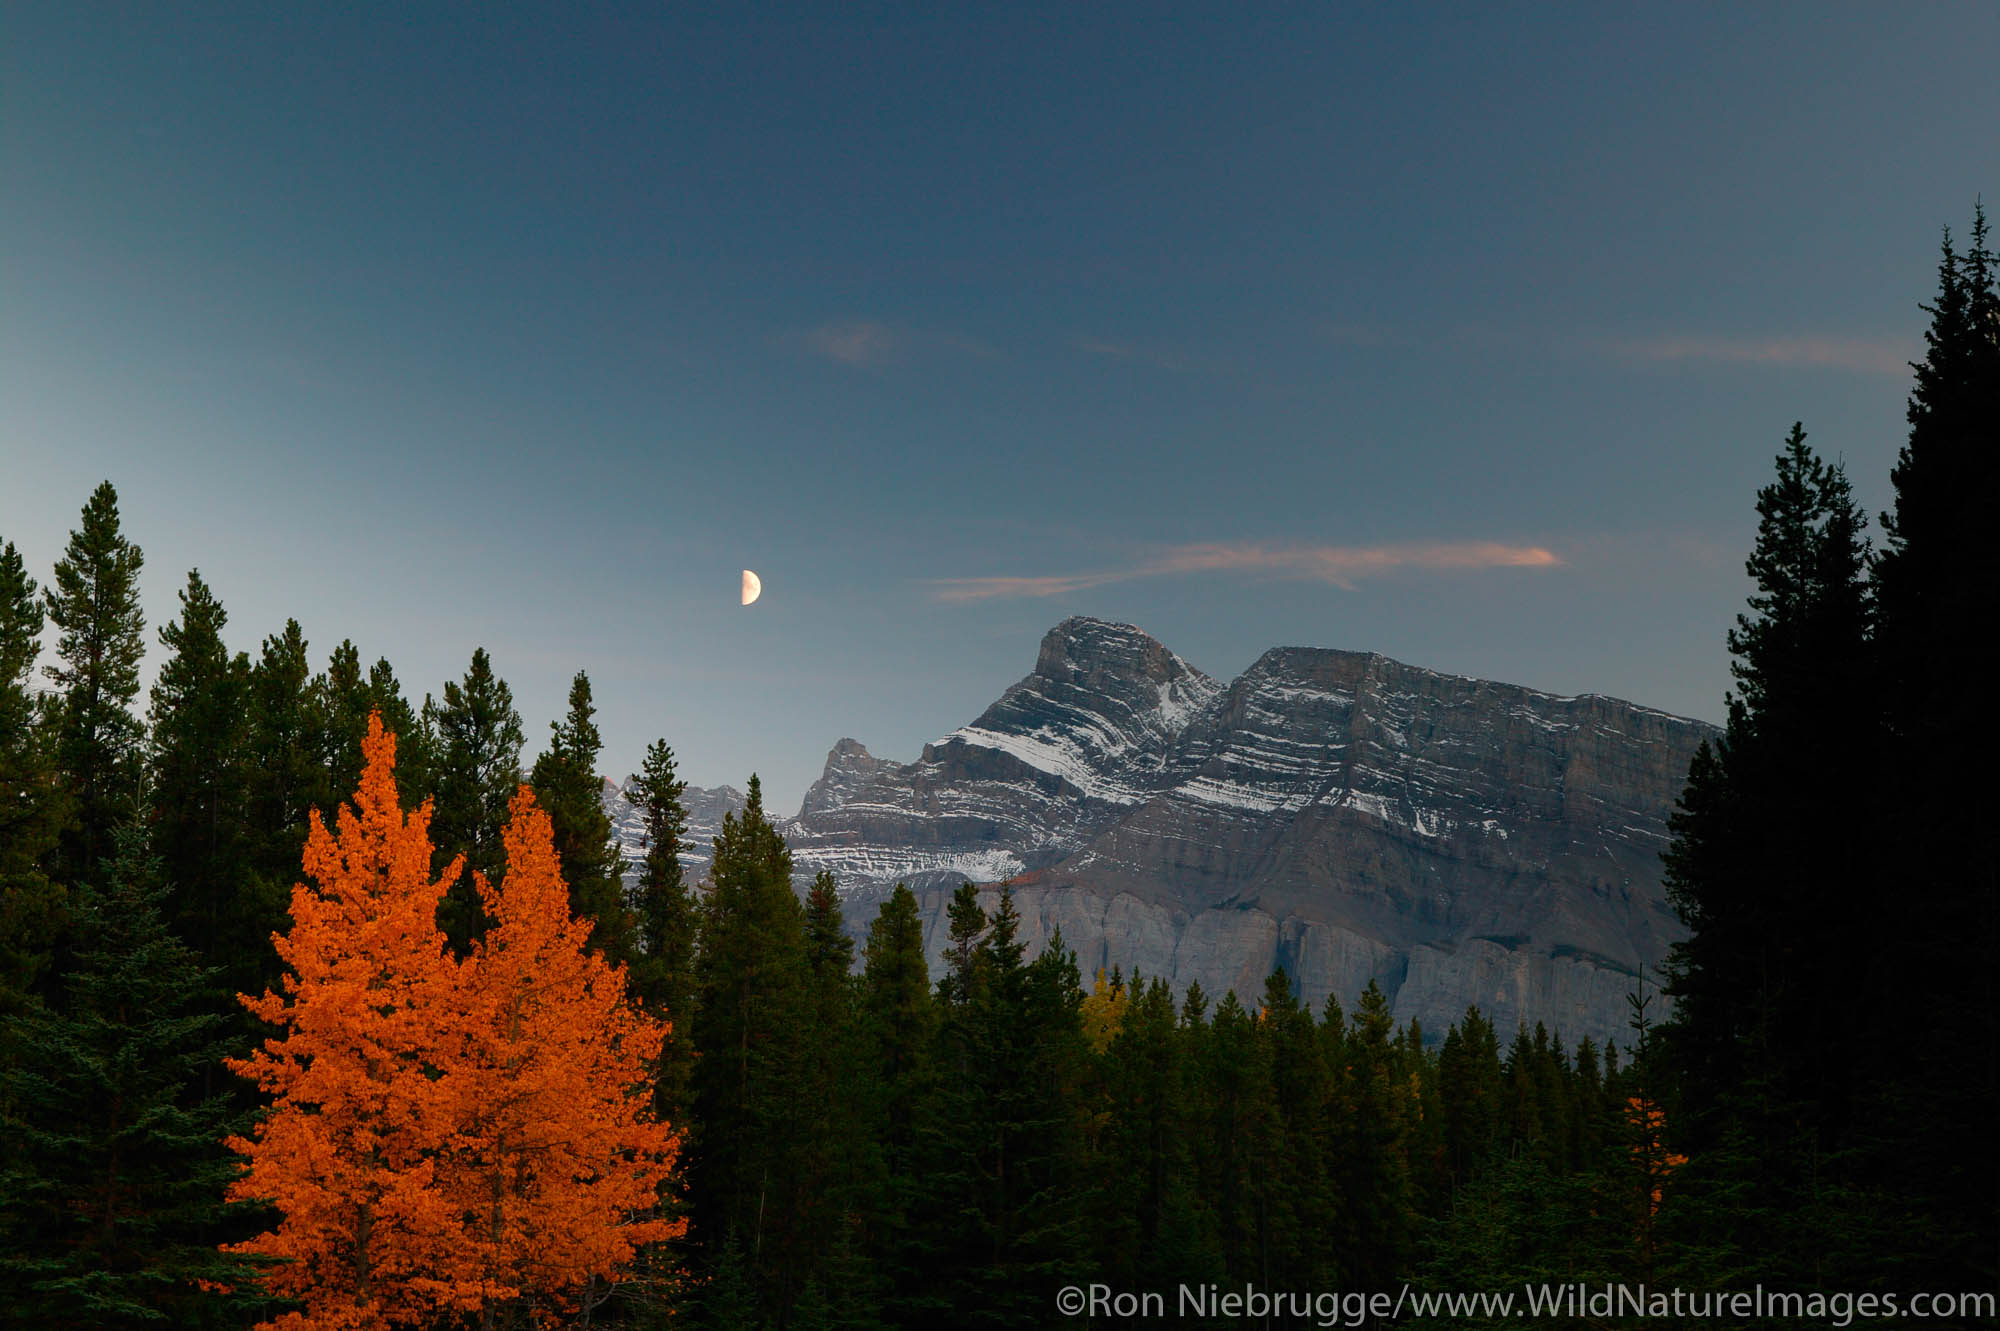 Fall colors and moon in the evening, Banff National Park, Alberta, Canada.